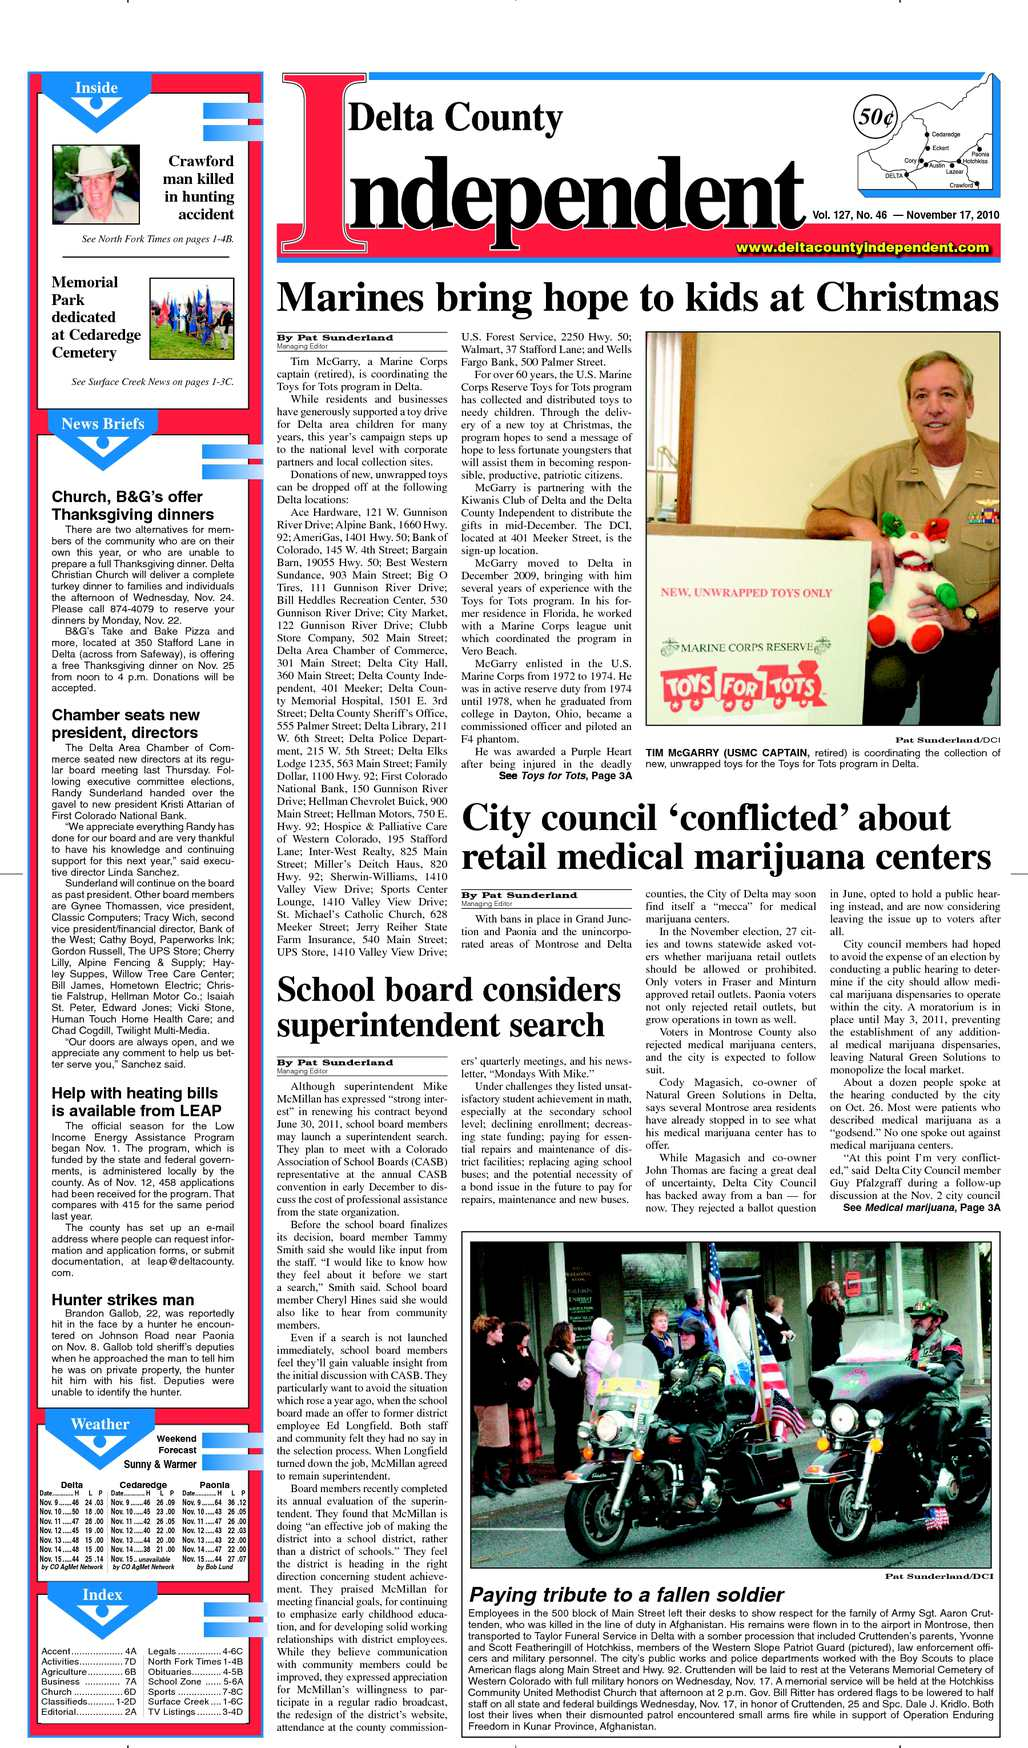 Calaméo - Delta County Independent, Issue 46, Nov. 17, 2010